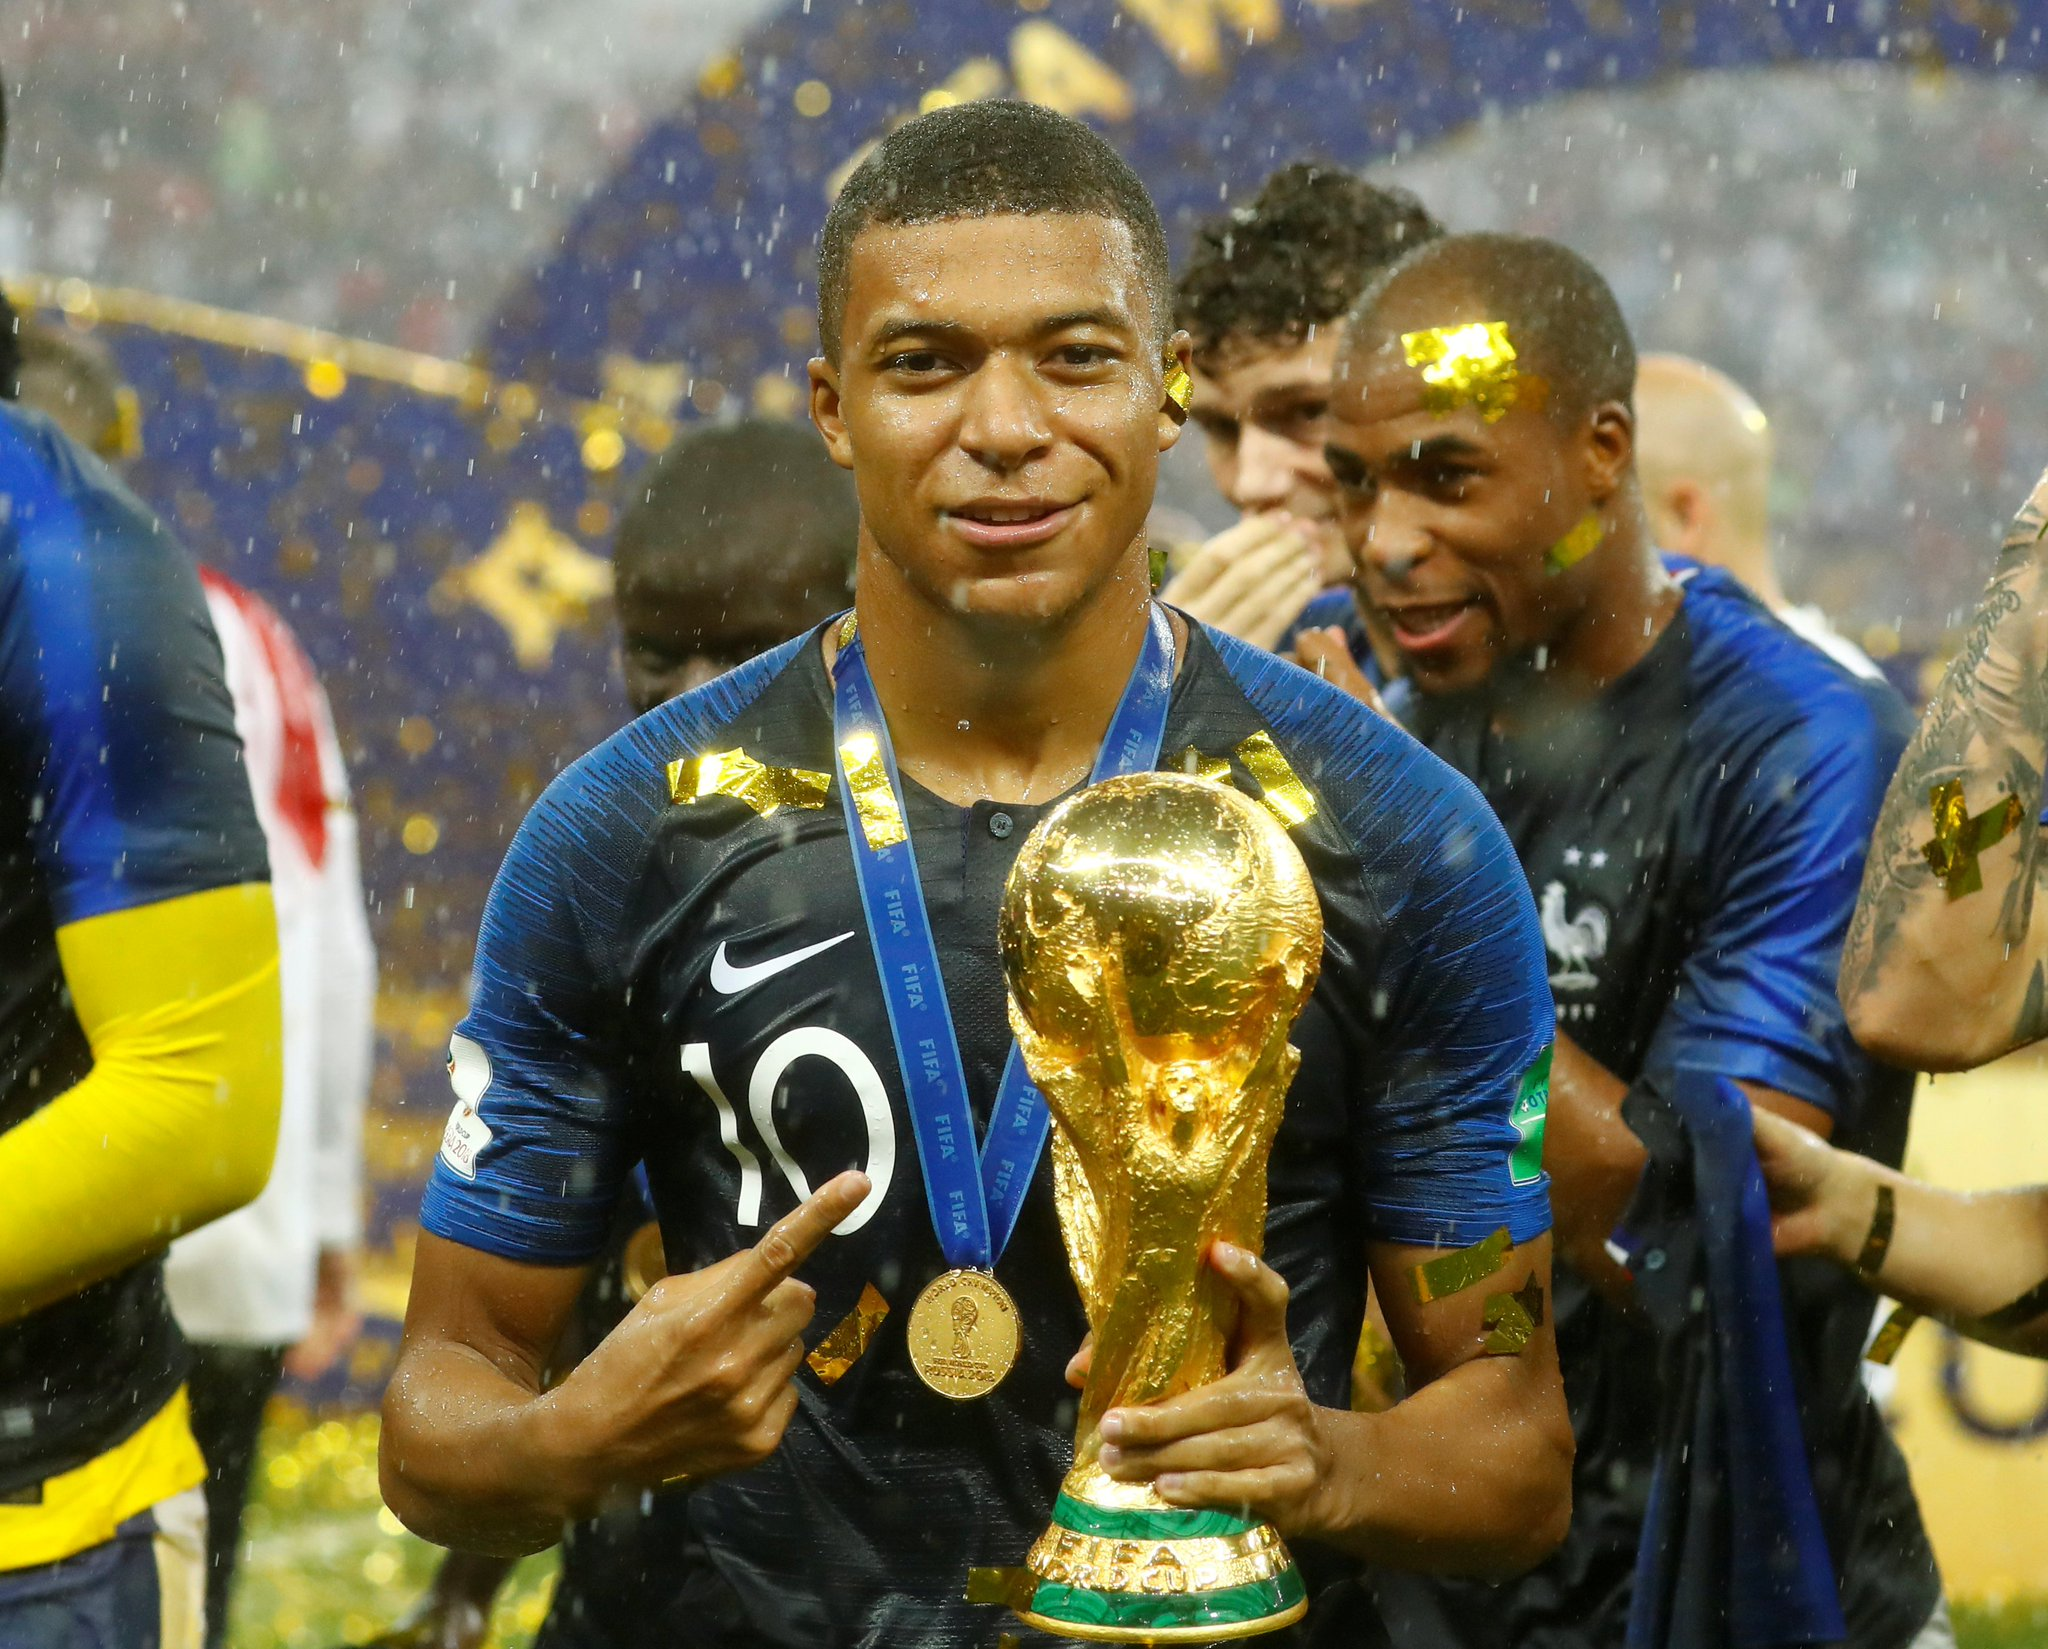 For Paris' poorer suburbs, Kylian Mbappe provides hope https://t.co/IXbR9X67yx #WorldCupFinal https://t.co/P0tcZ0MXSC